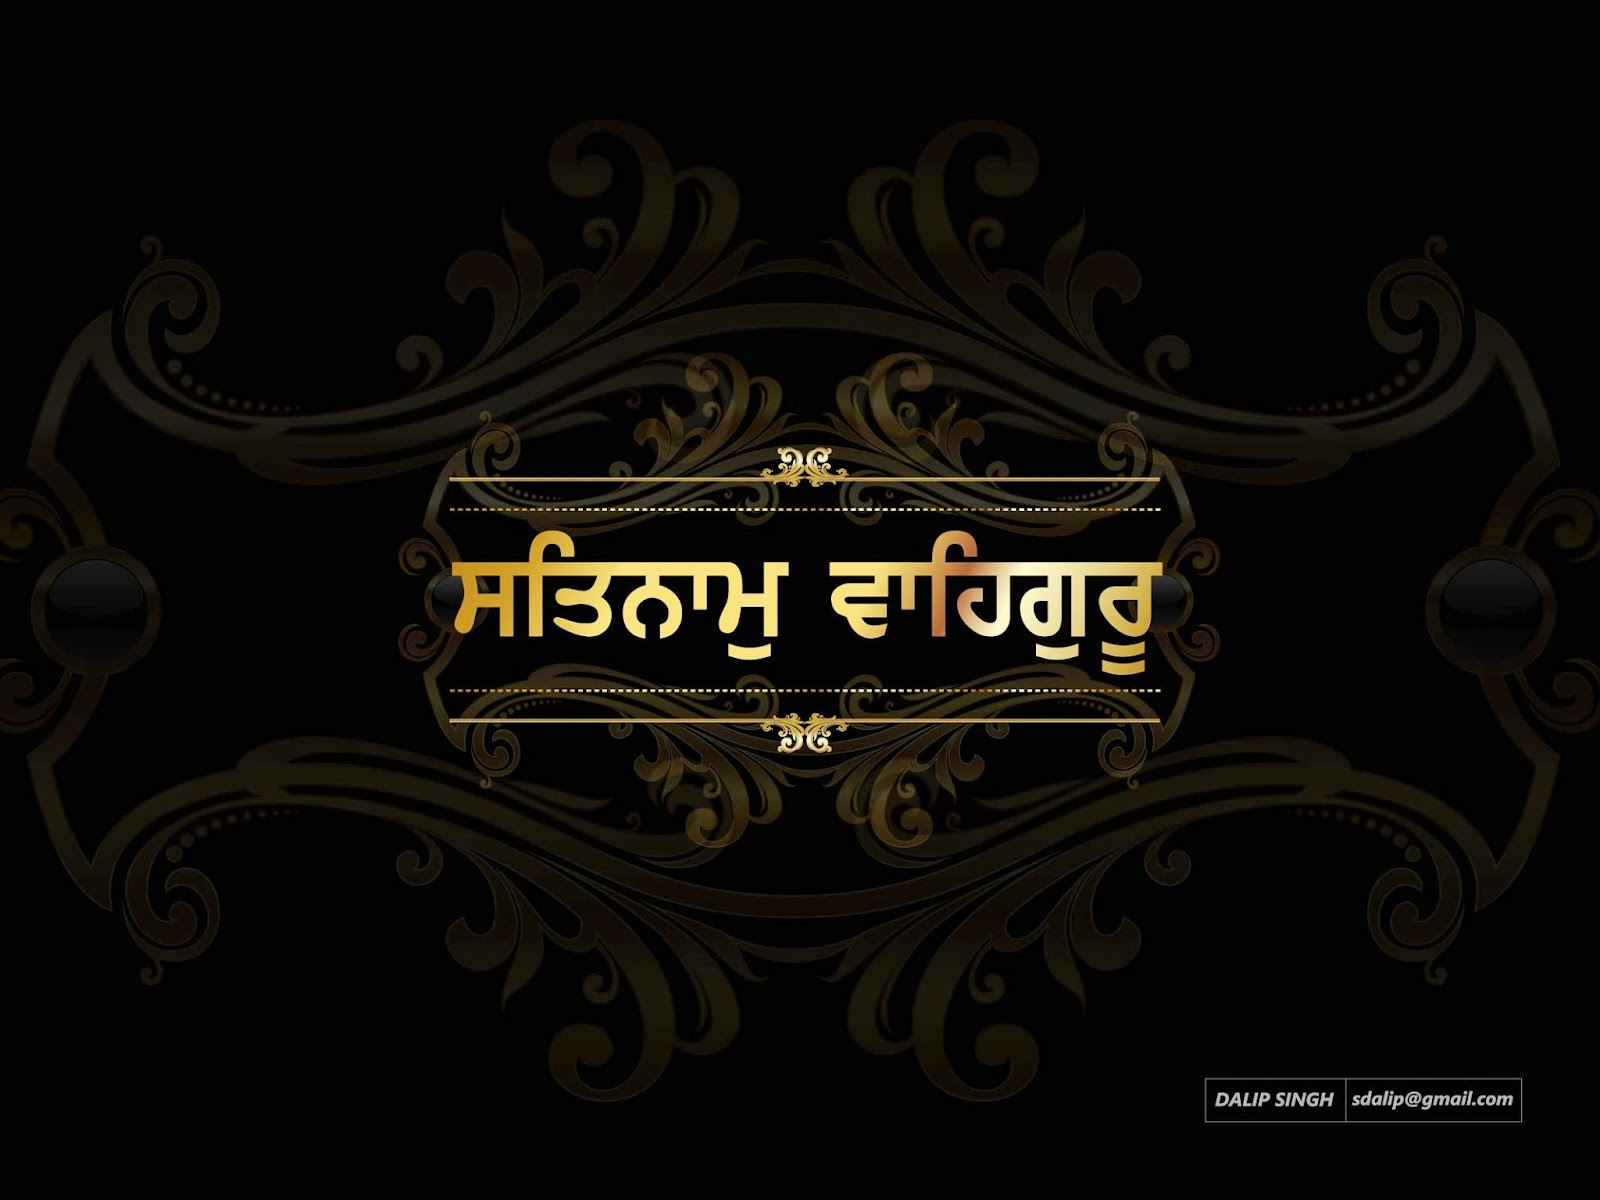 Ek Onkar Hd Wallpaper Sikhi Wallpapers Allaboutsikhi